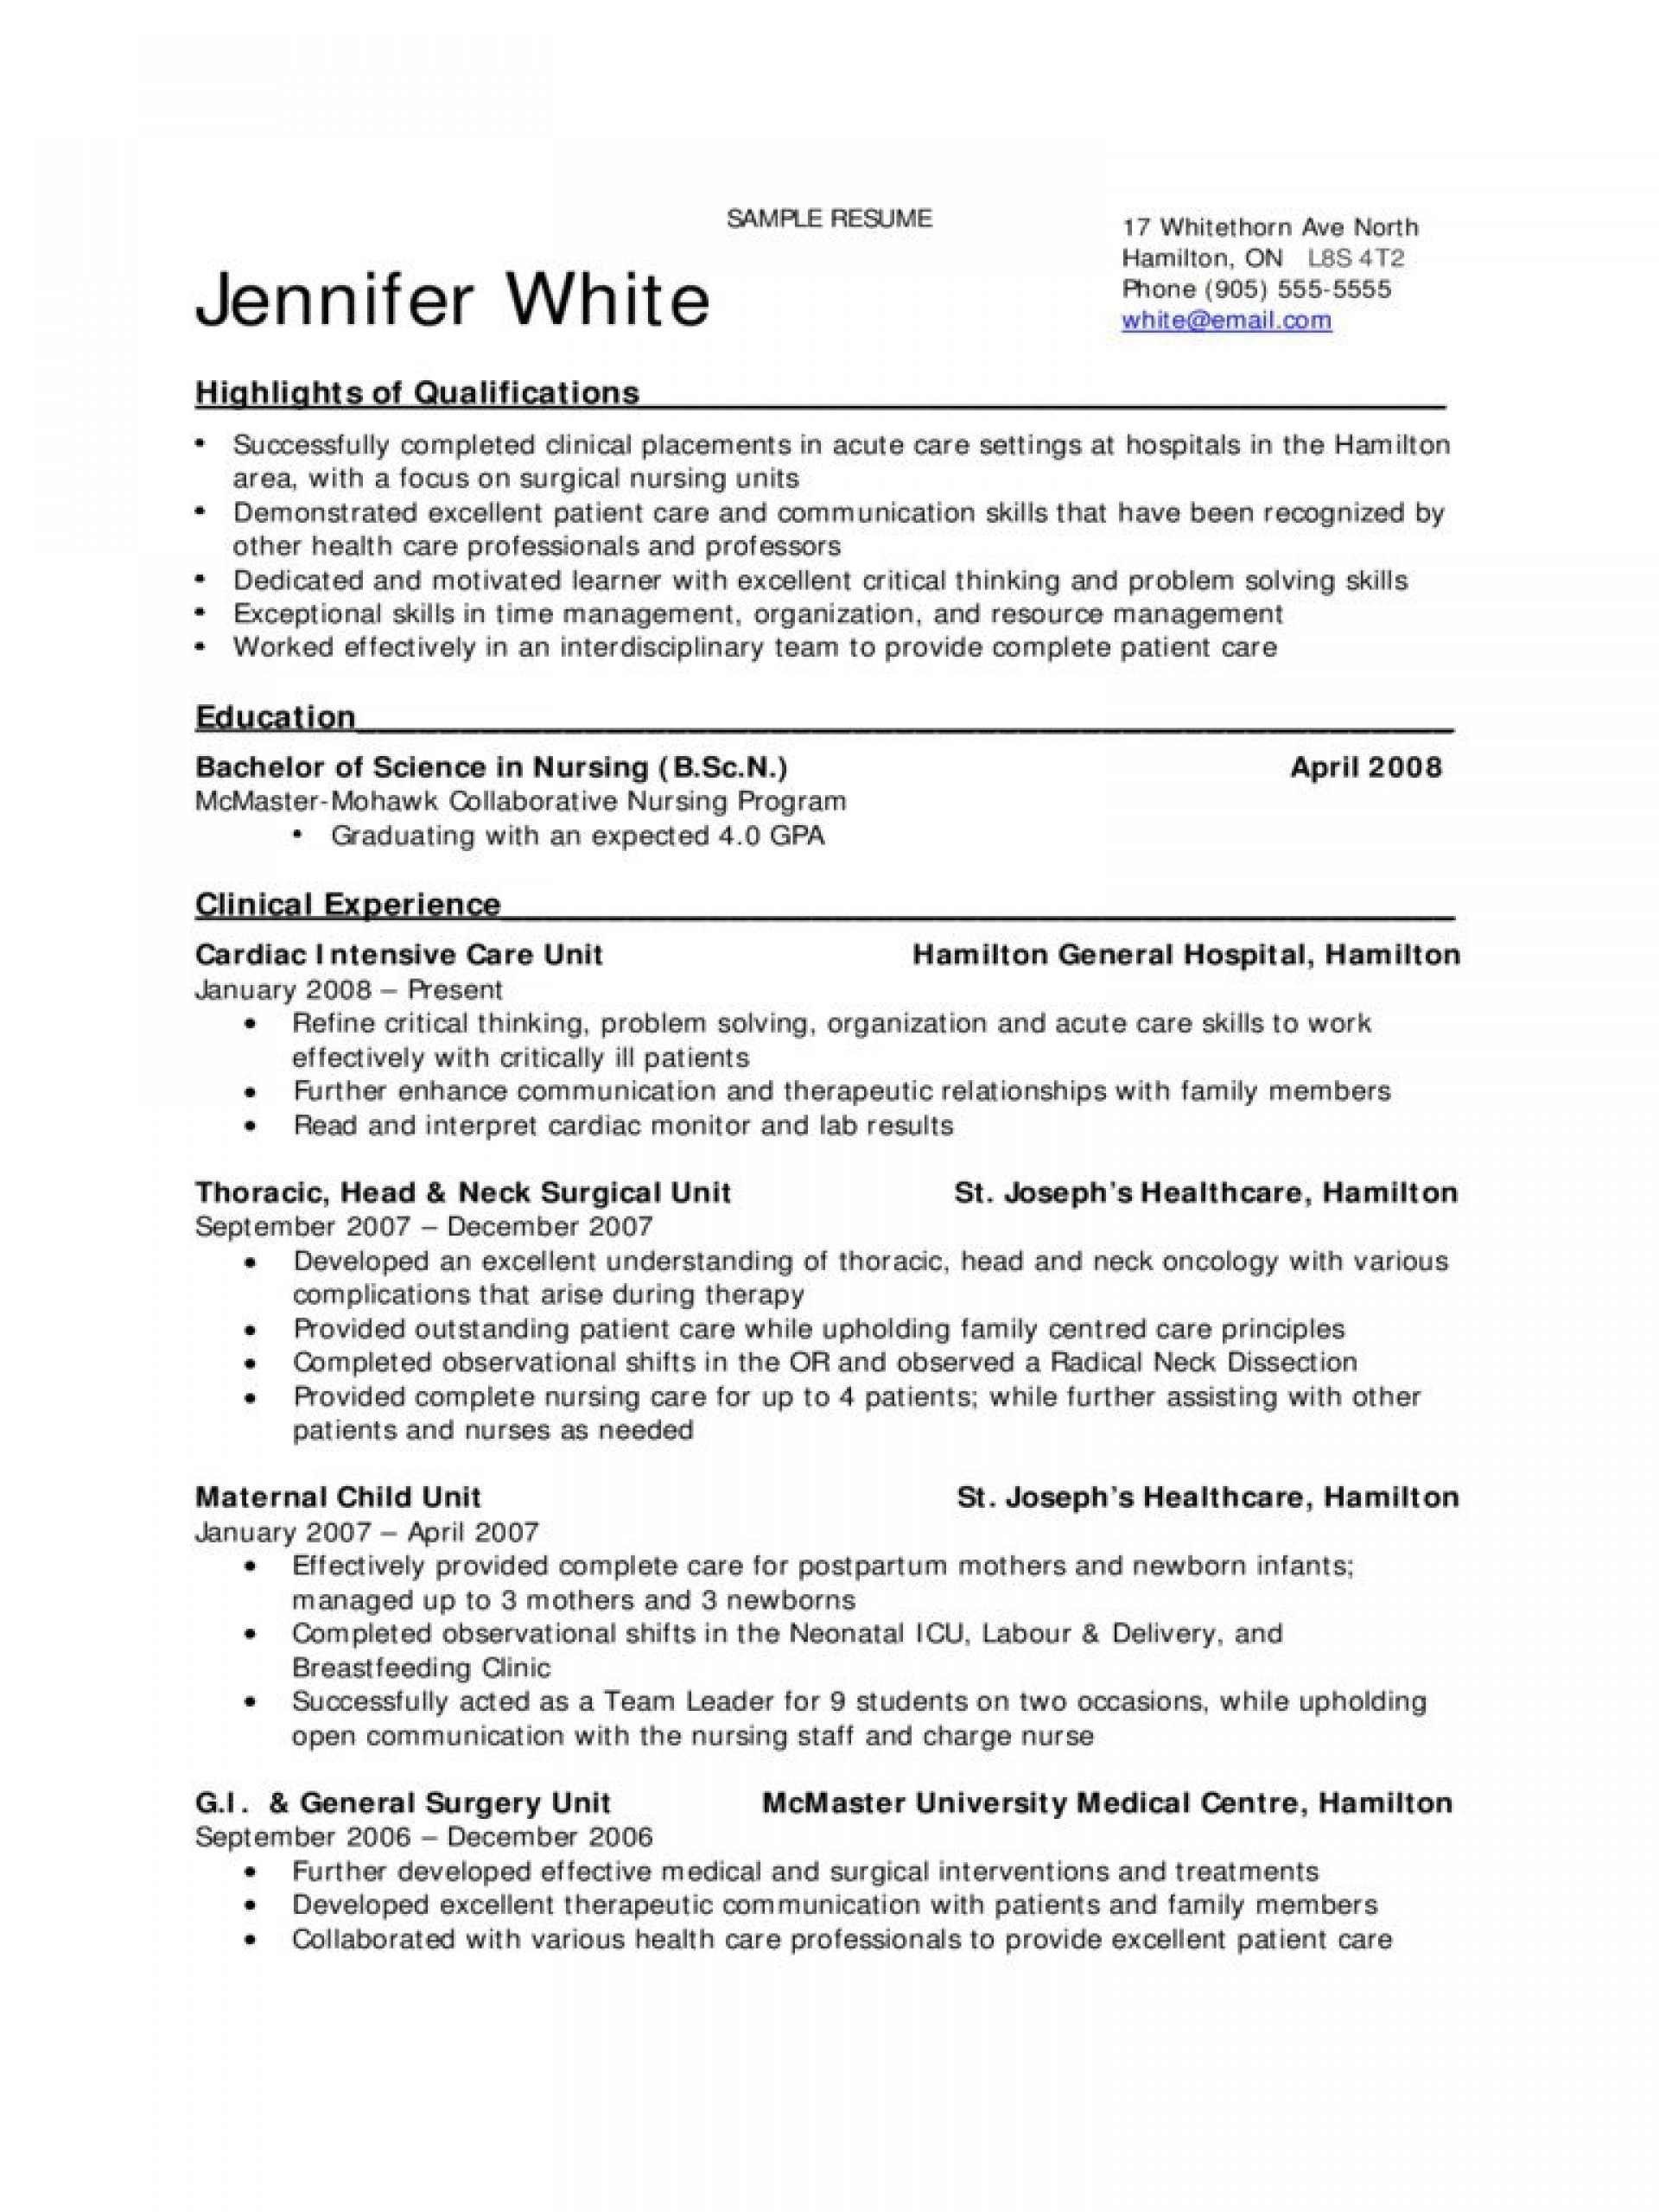 009 Excellent New Grad Nursing Resume Template Example  Graduate Nurse Practitioner1920